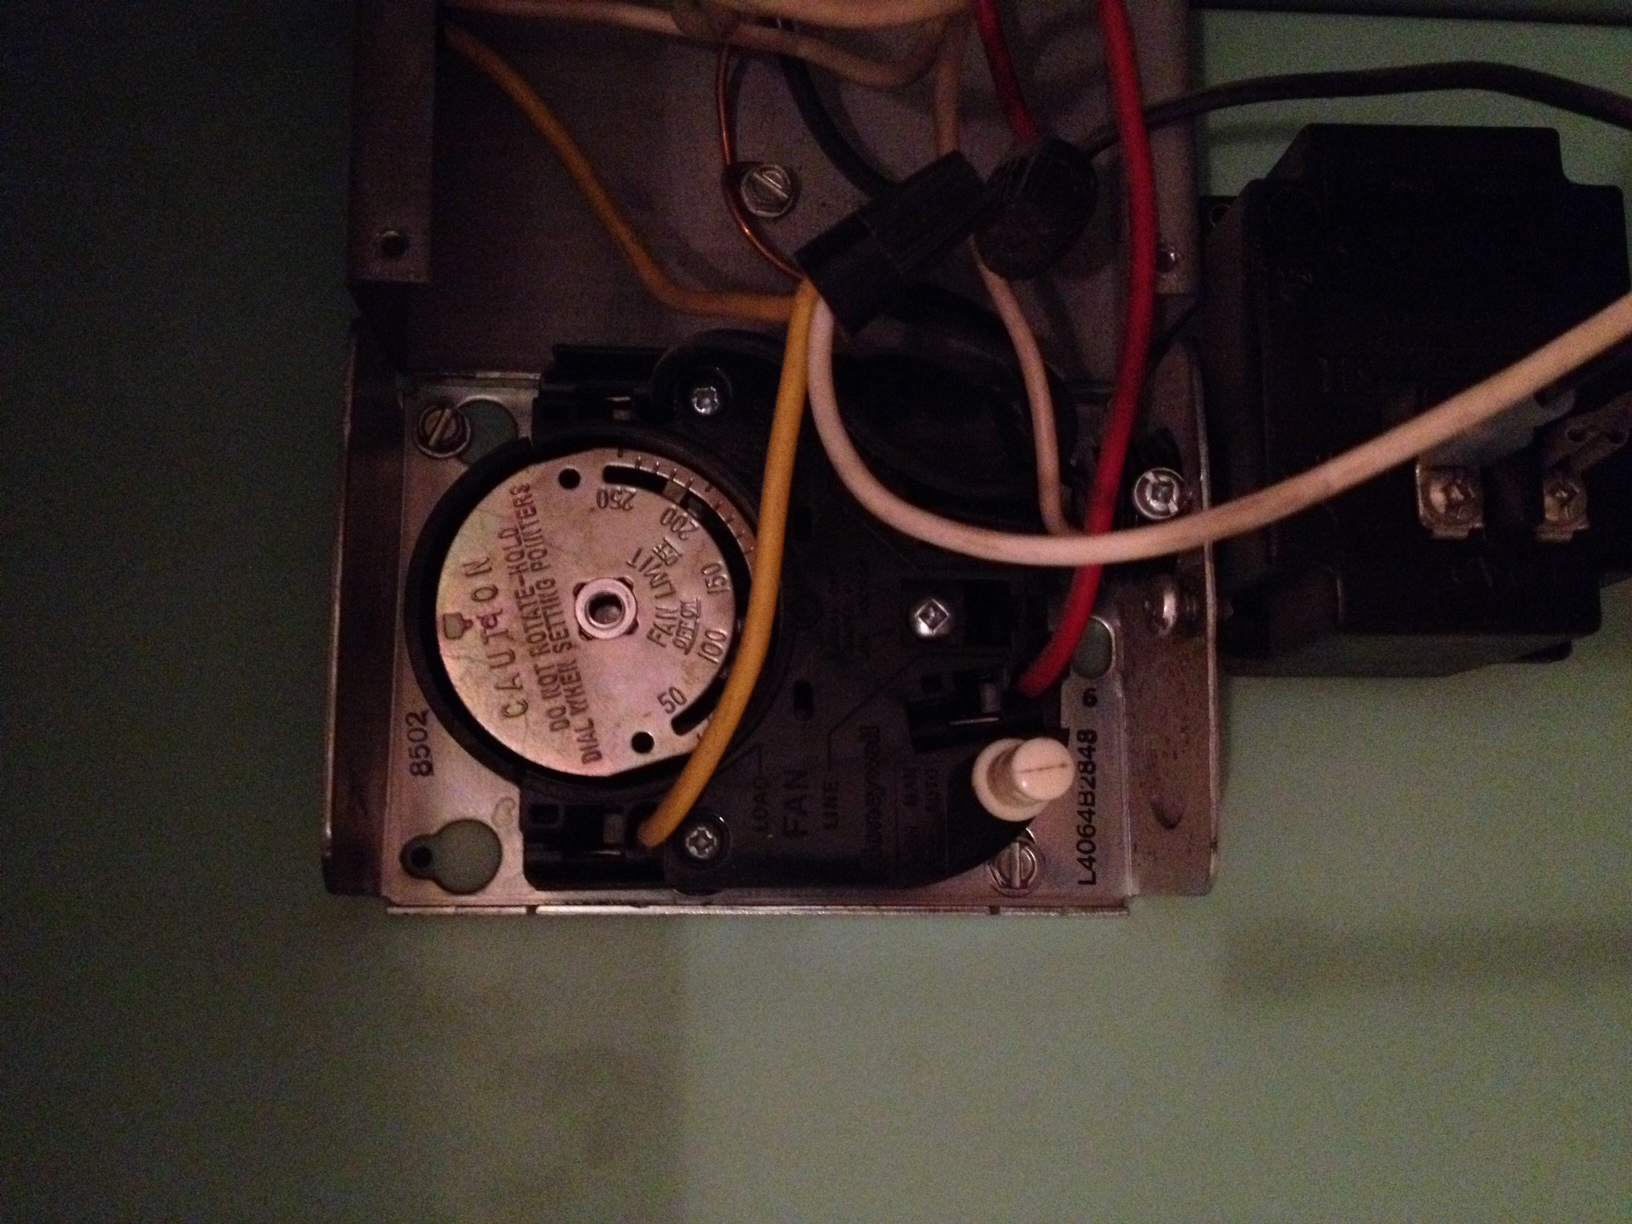 How to Hook Up a Home Thermostat